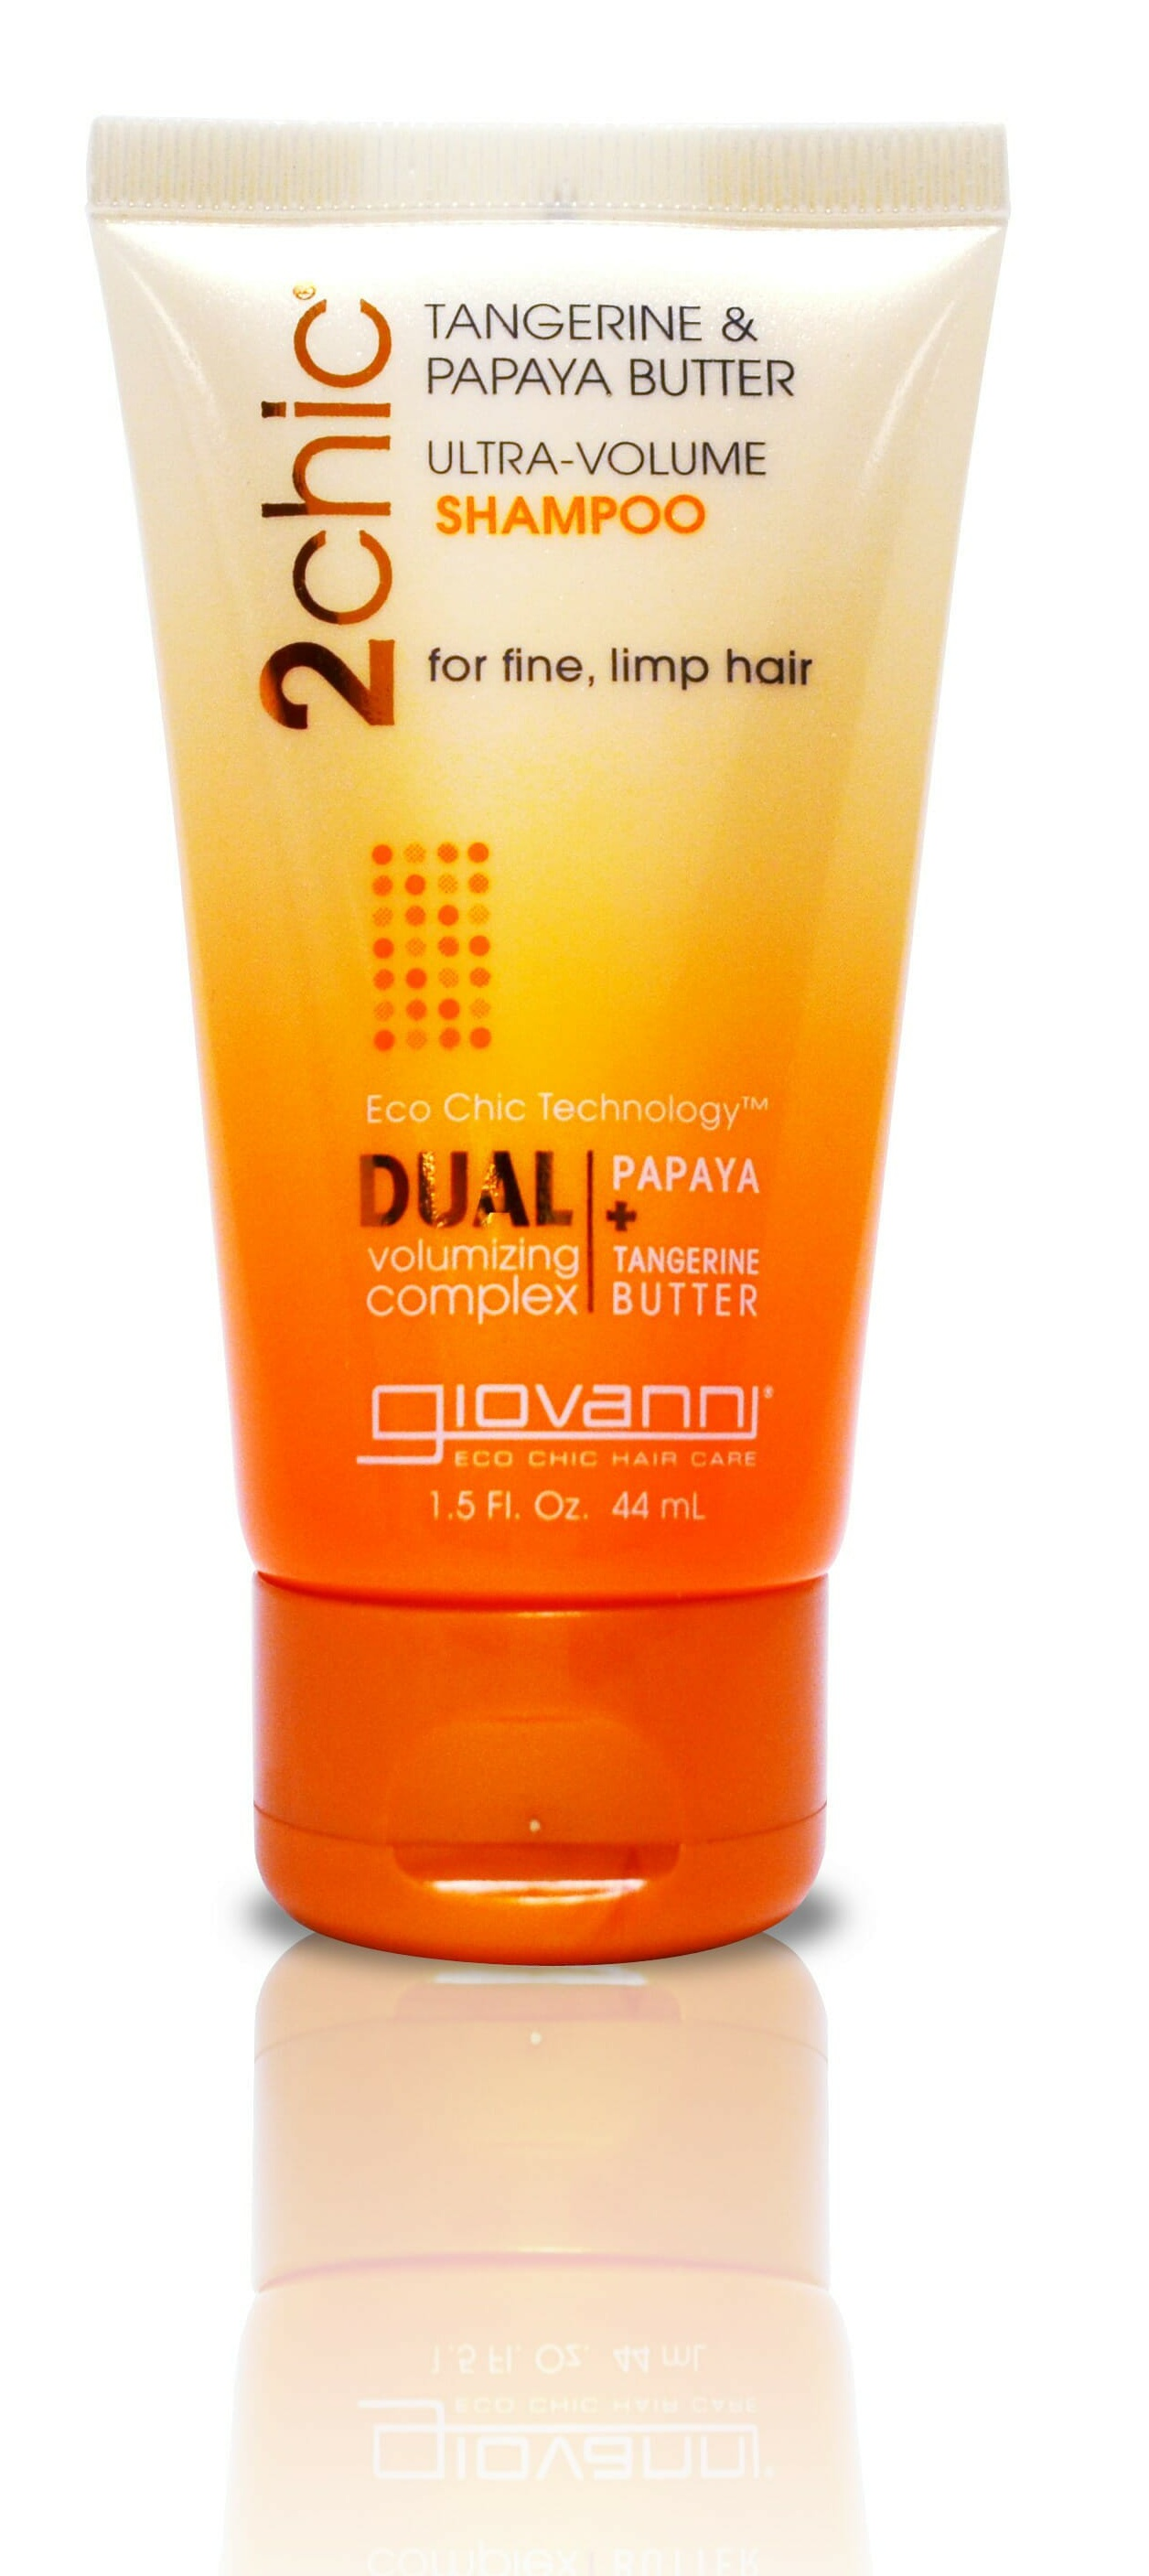 Giovanni Ultra-Volume Shampoo